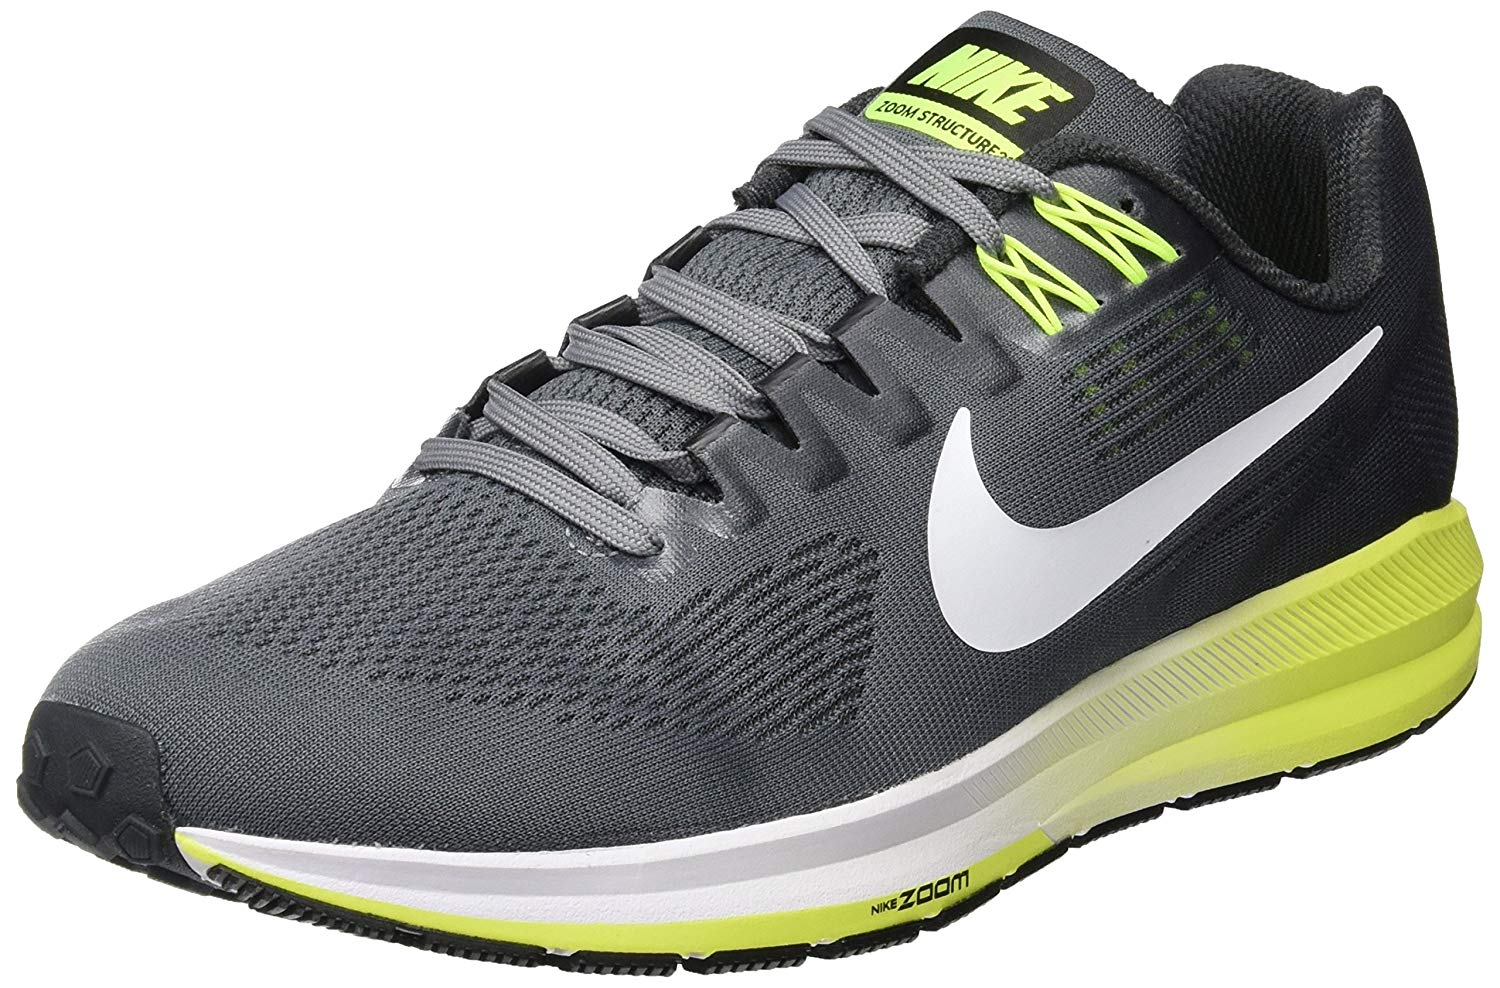 quality design 7d284 6475f Nike Air Zoom Structure 21